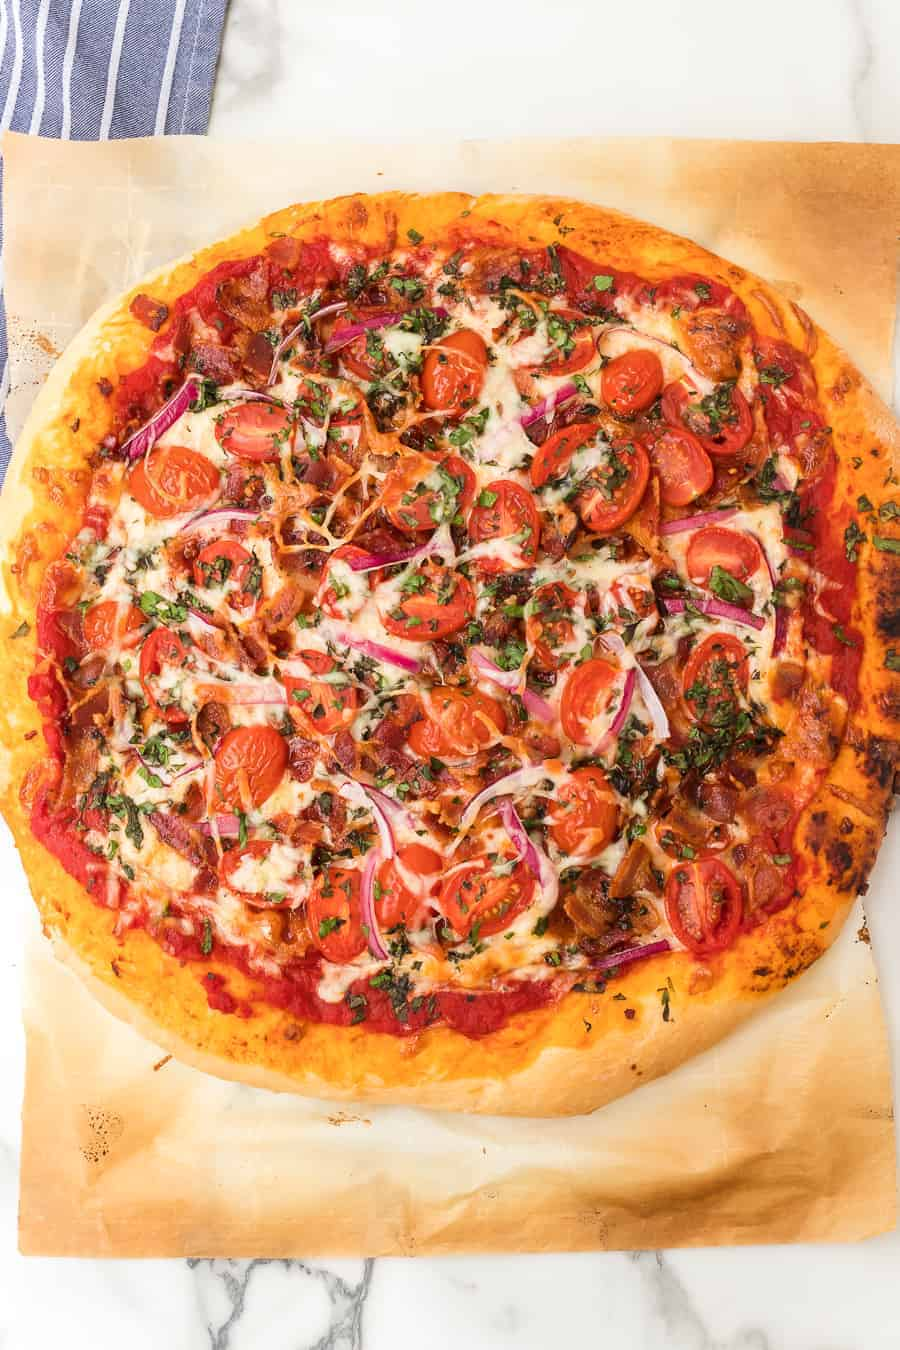 Homemade pizza dough topped with bacon, cheese, tomatoes, and herbs is the perfect pizza to make tonight. Your whole family will love it! #pizza #homemadepizza #tomatobaconpizza